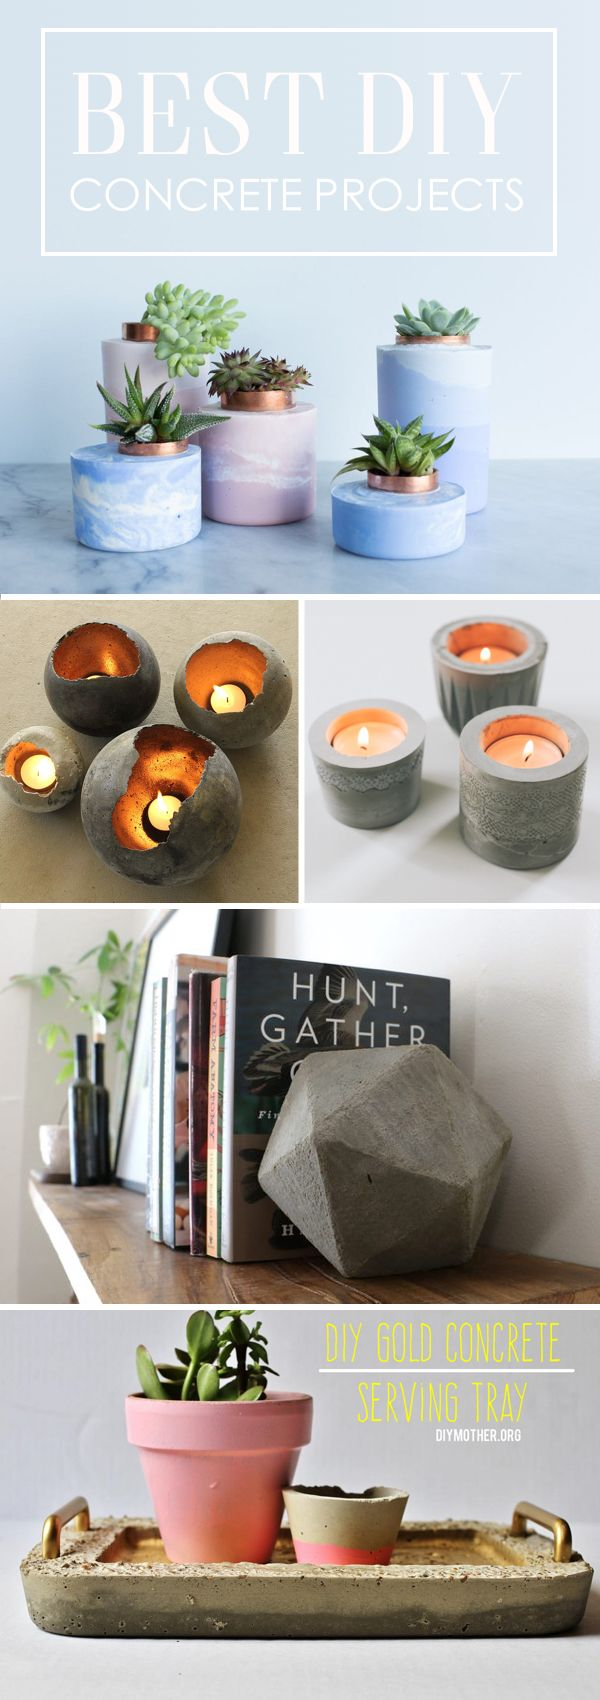 27 Gorgeous DIY Concrete Projects Thatu0027ll Add